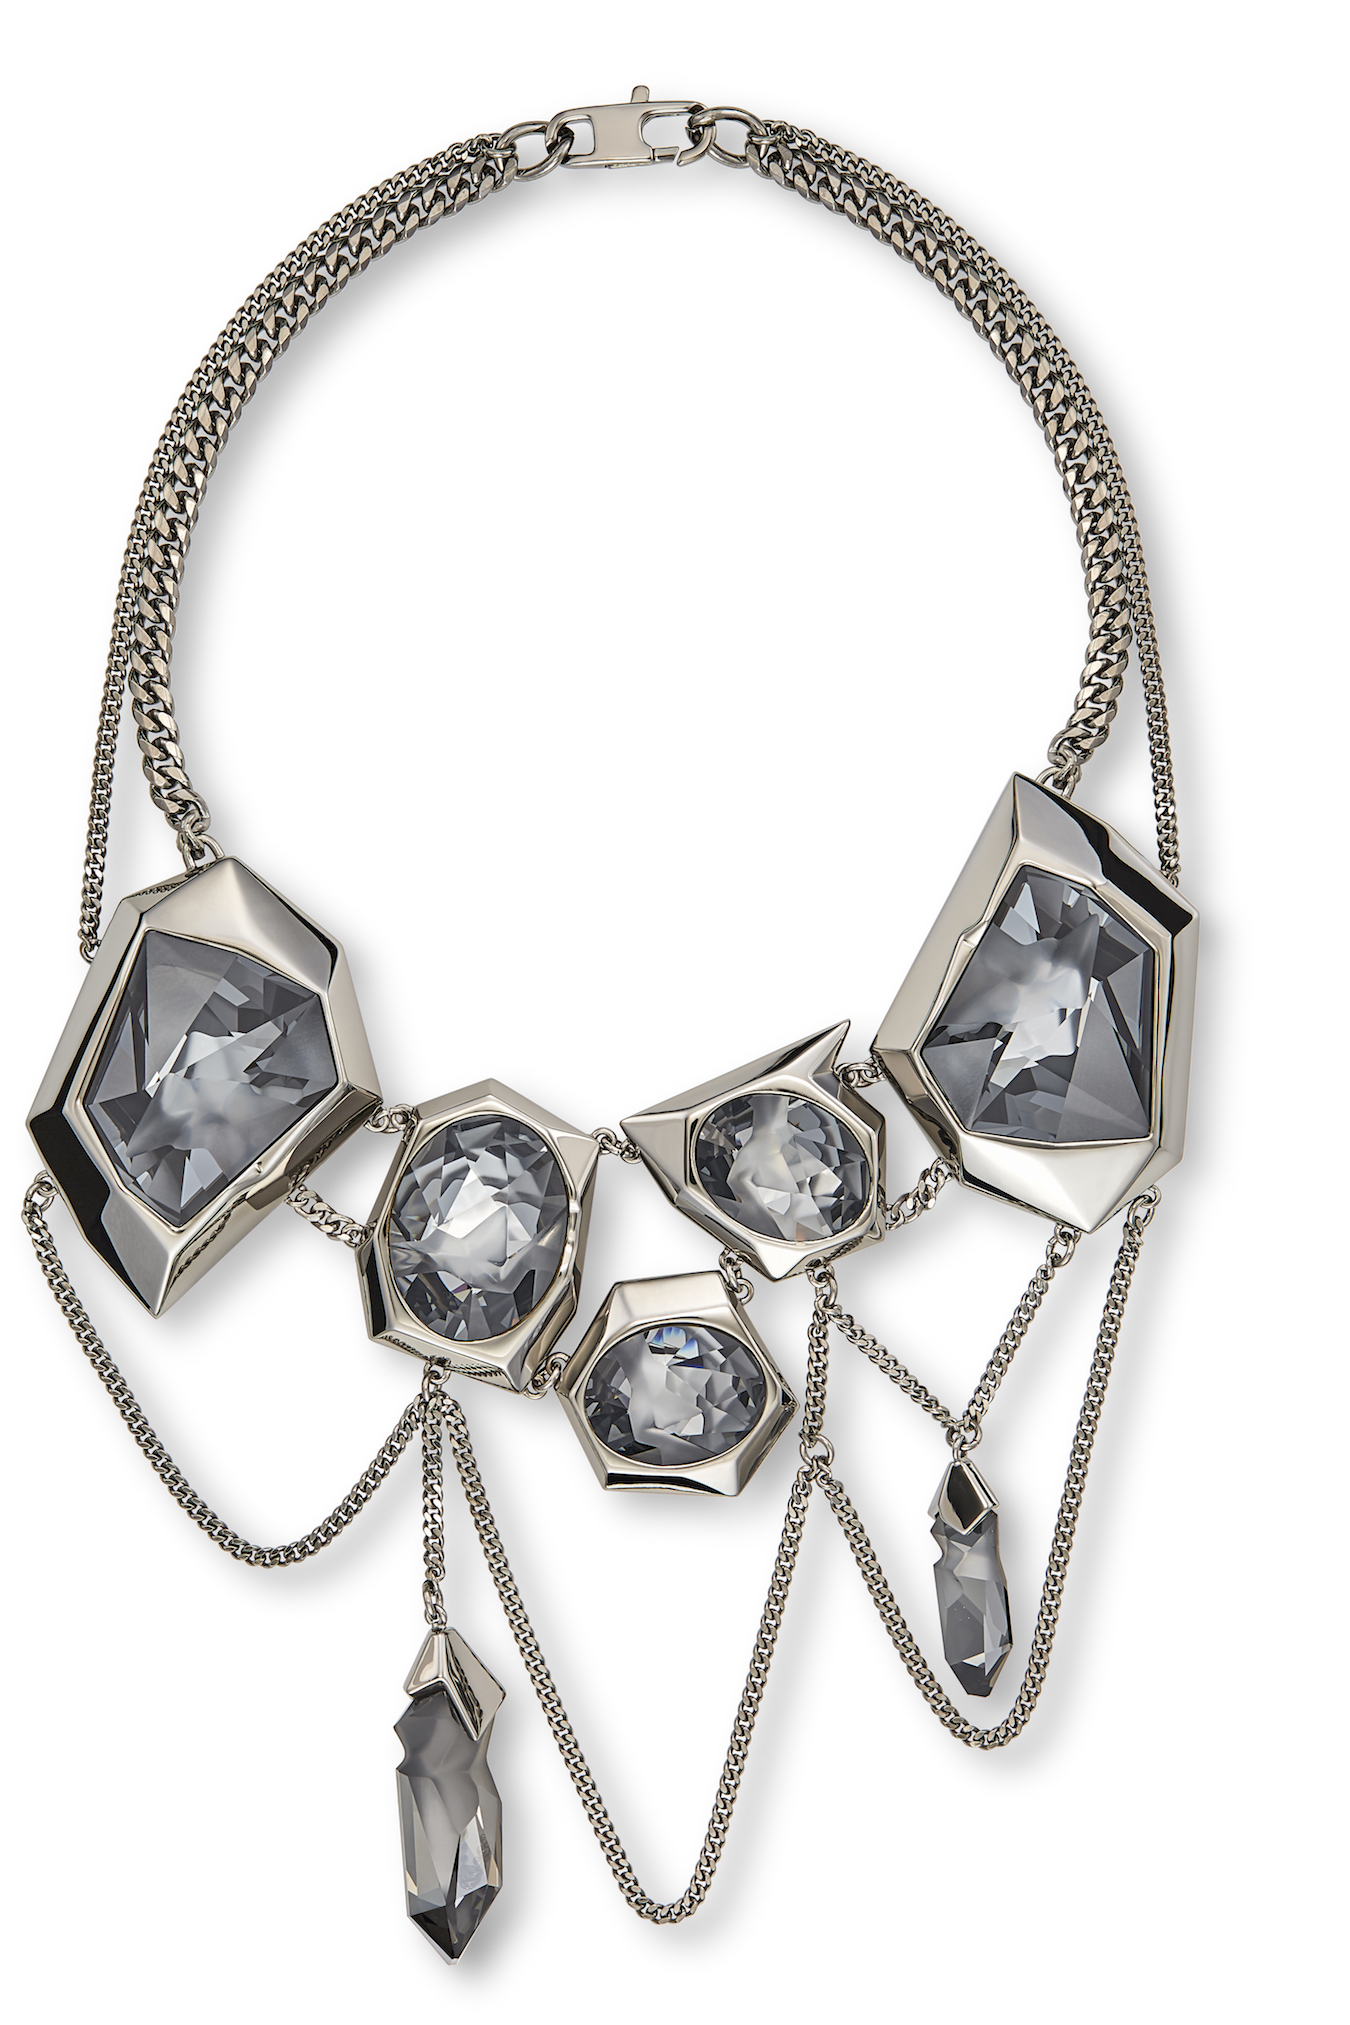 Atelier Swarovski by Jean Paul Gaultier - necklace